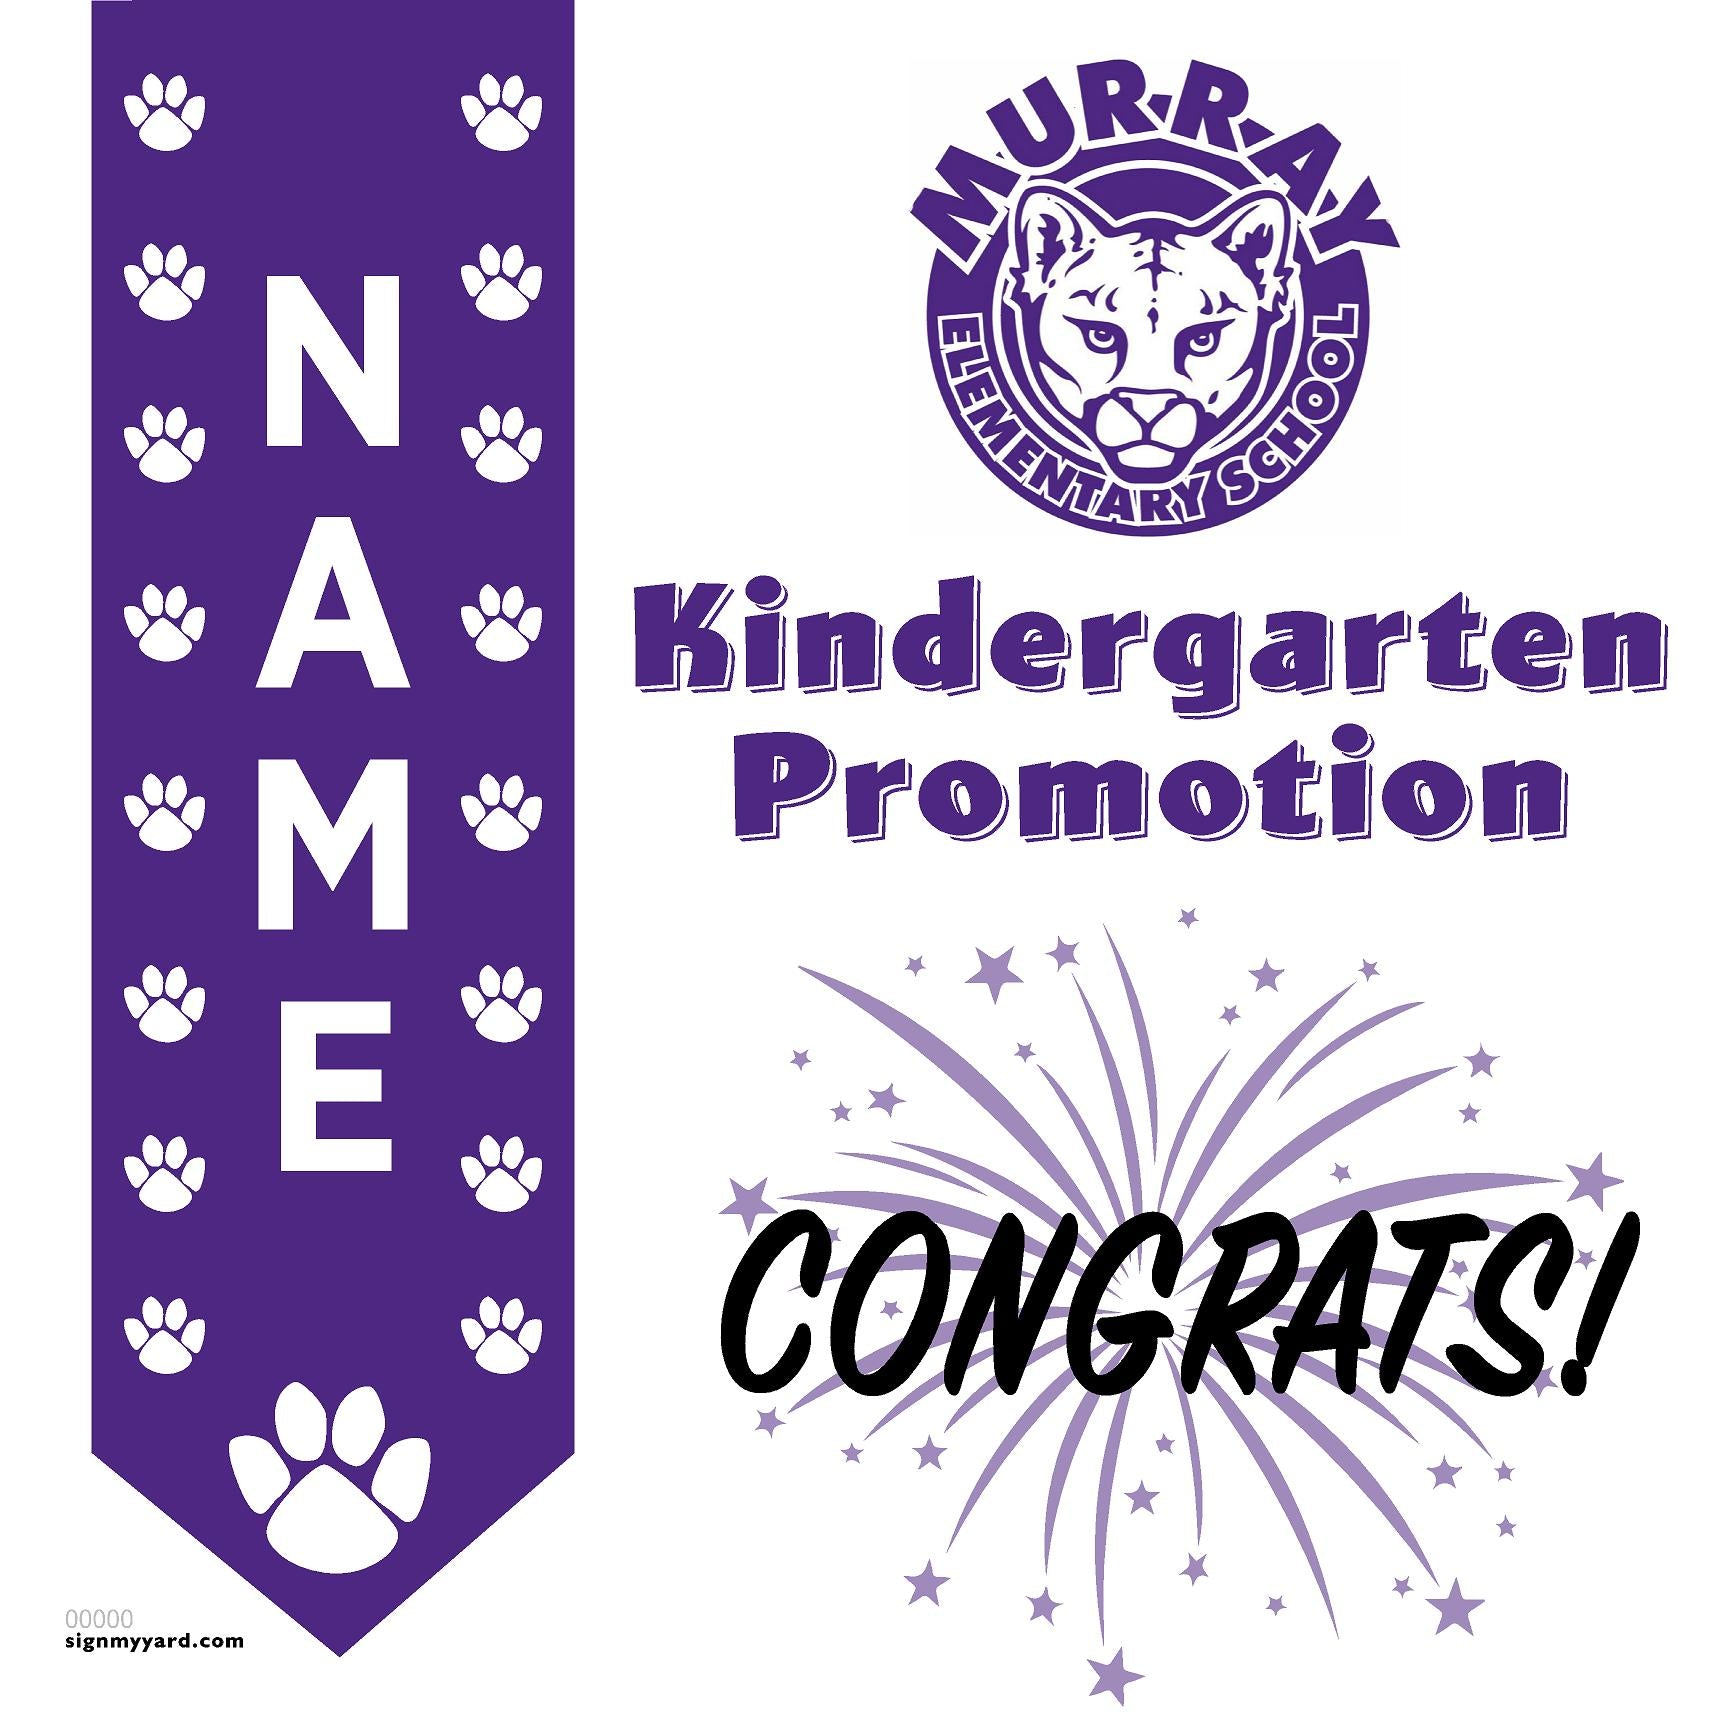 Murray Elementary Kindergarten Promotion 24x24 Yard Sign (Option B)